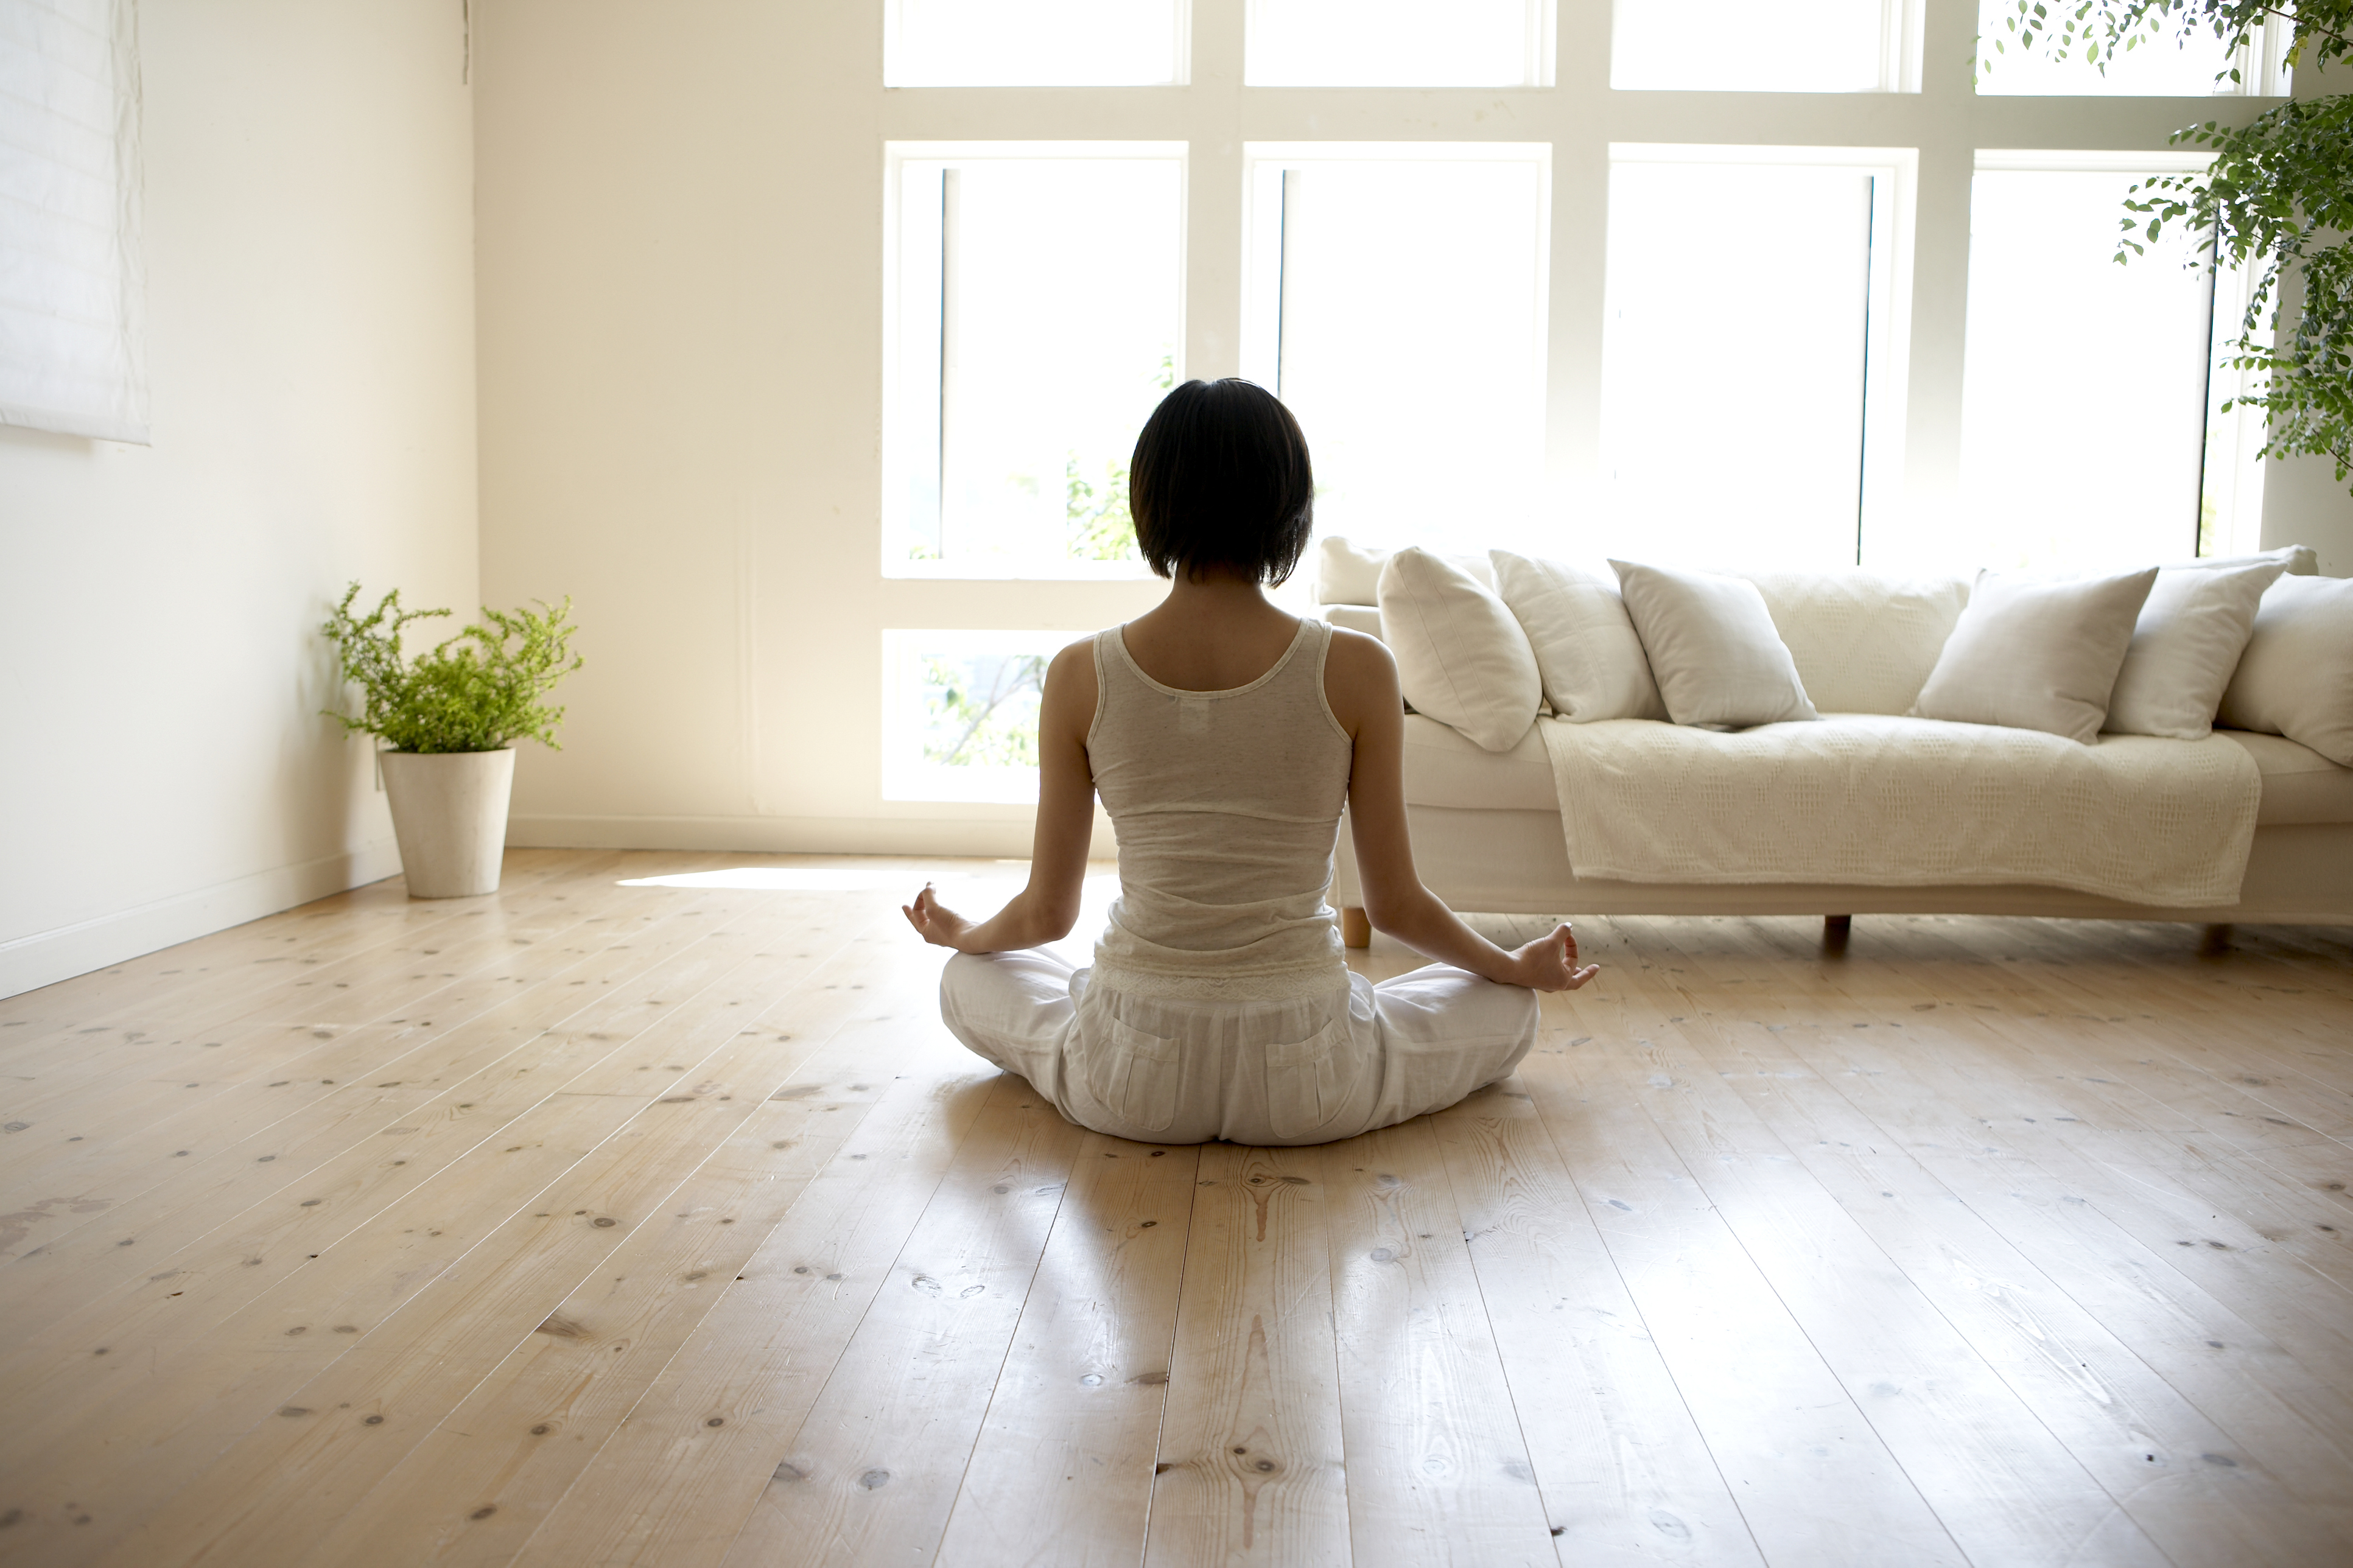 How To Do Yoga At Home With Dominion Ridge